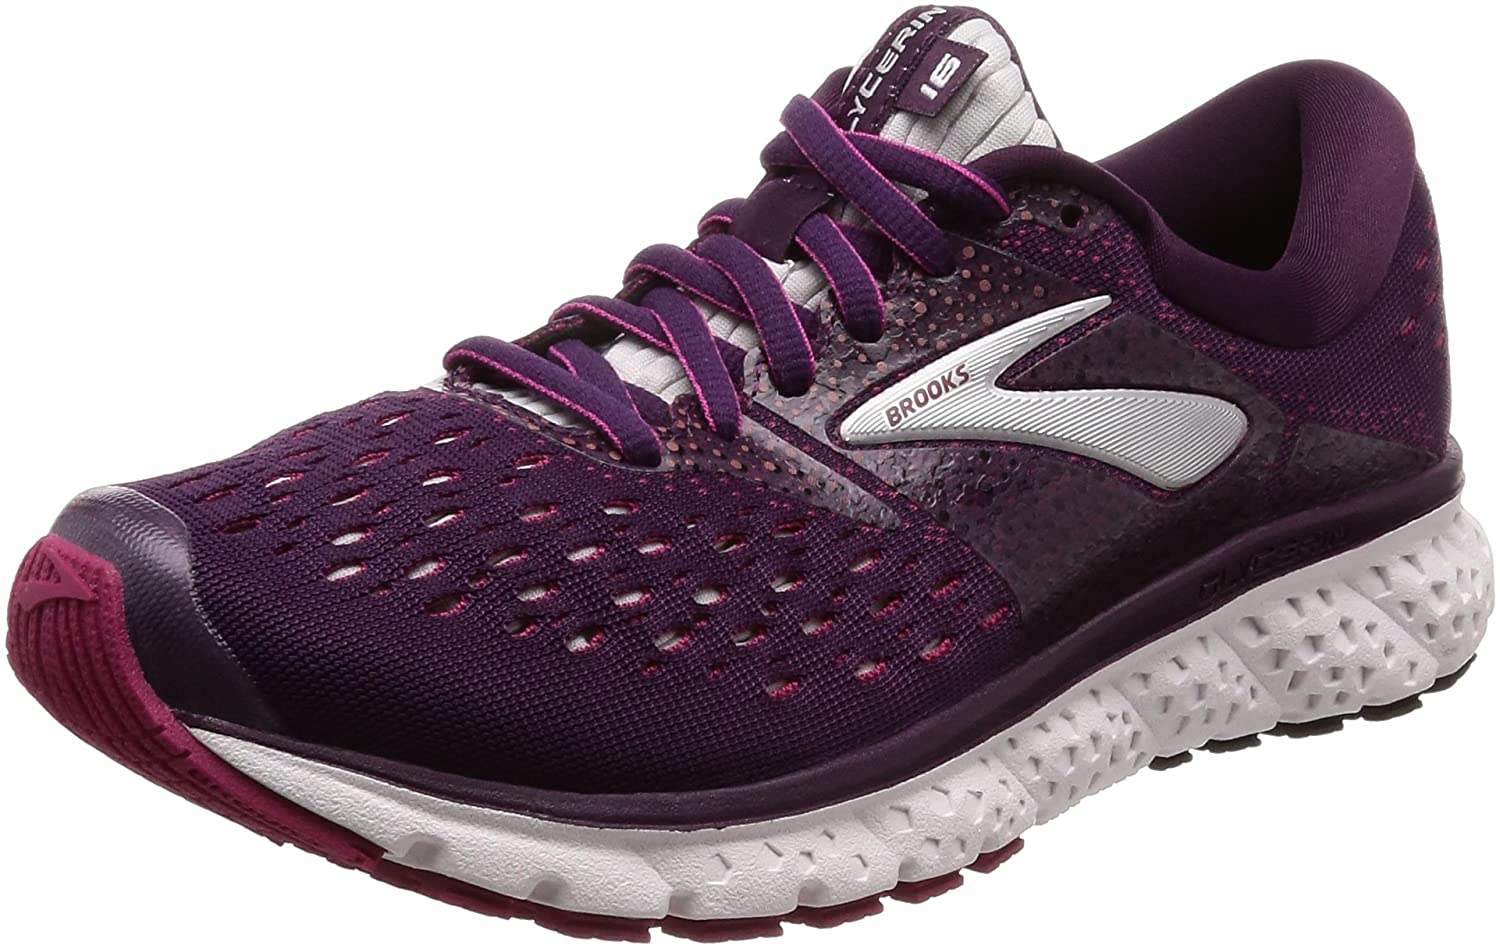 Top 5 Best Tennis Shoes for Back Pain Women's in 2020   Brooks Glycerin 16